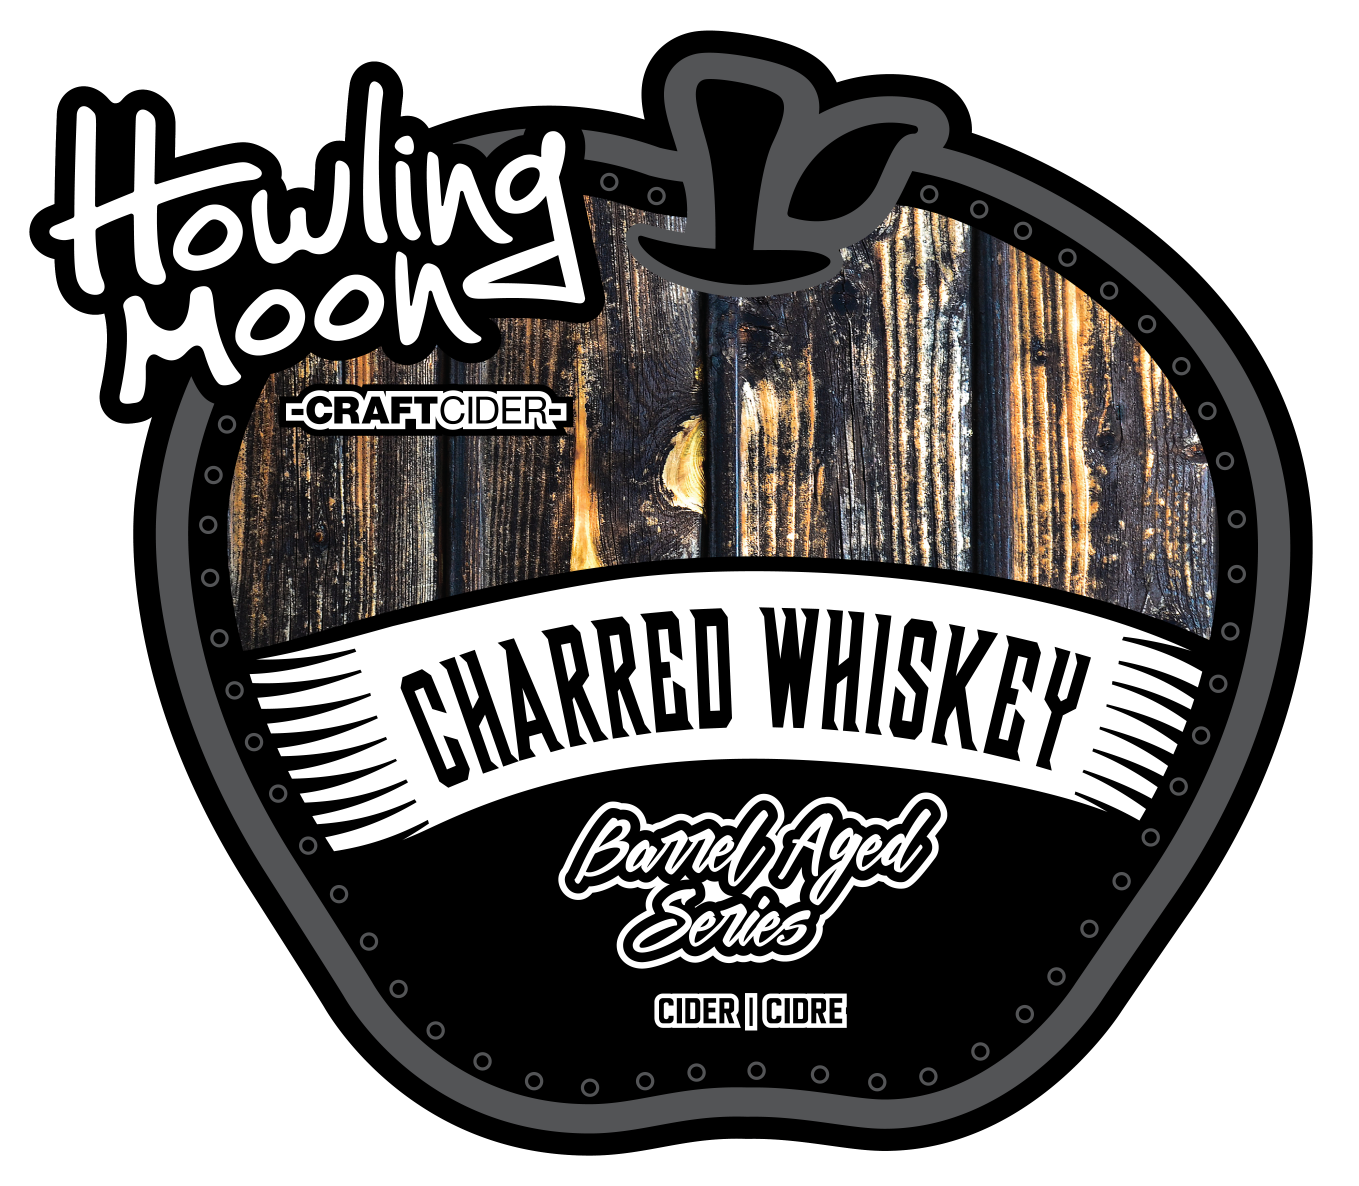 Charred Whiskey Barrel Aged Howling Moon Craft Cider, made from heritage apples in Oliver BC